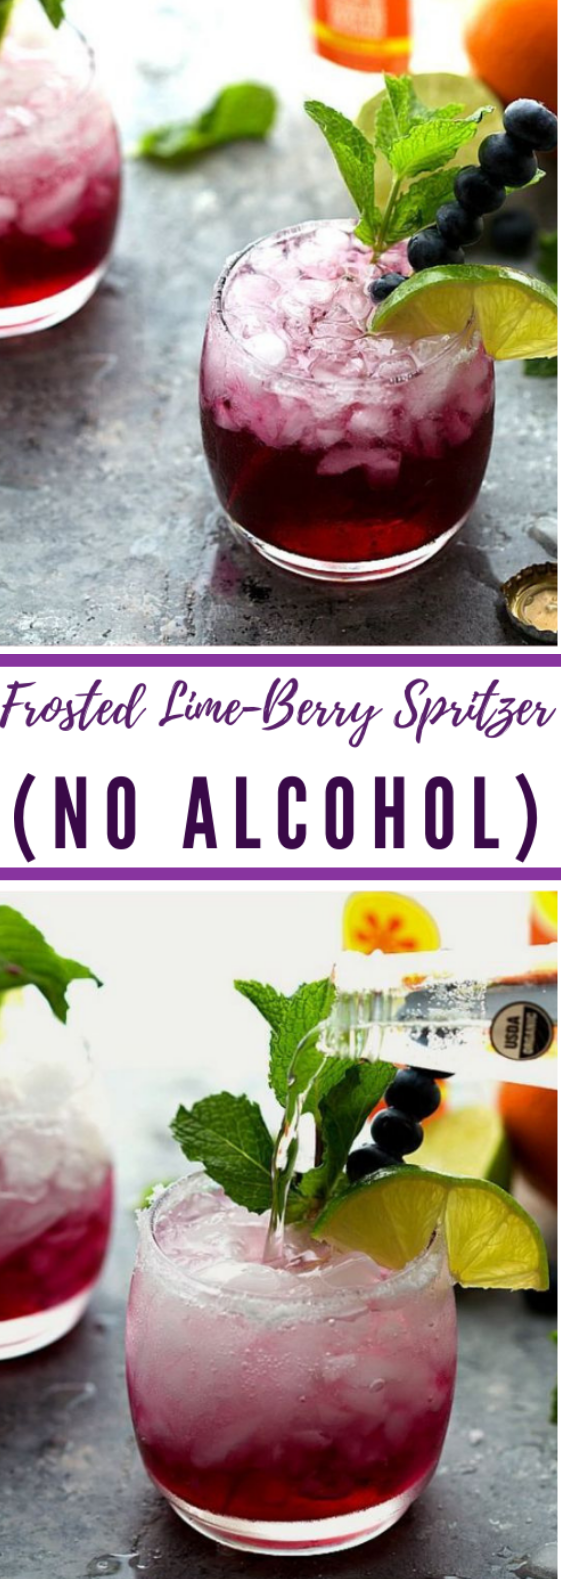 Frosted Lime-Berry Spritzer #drink #cocktail #healthydrink #smoothie #easy